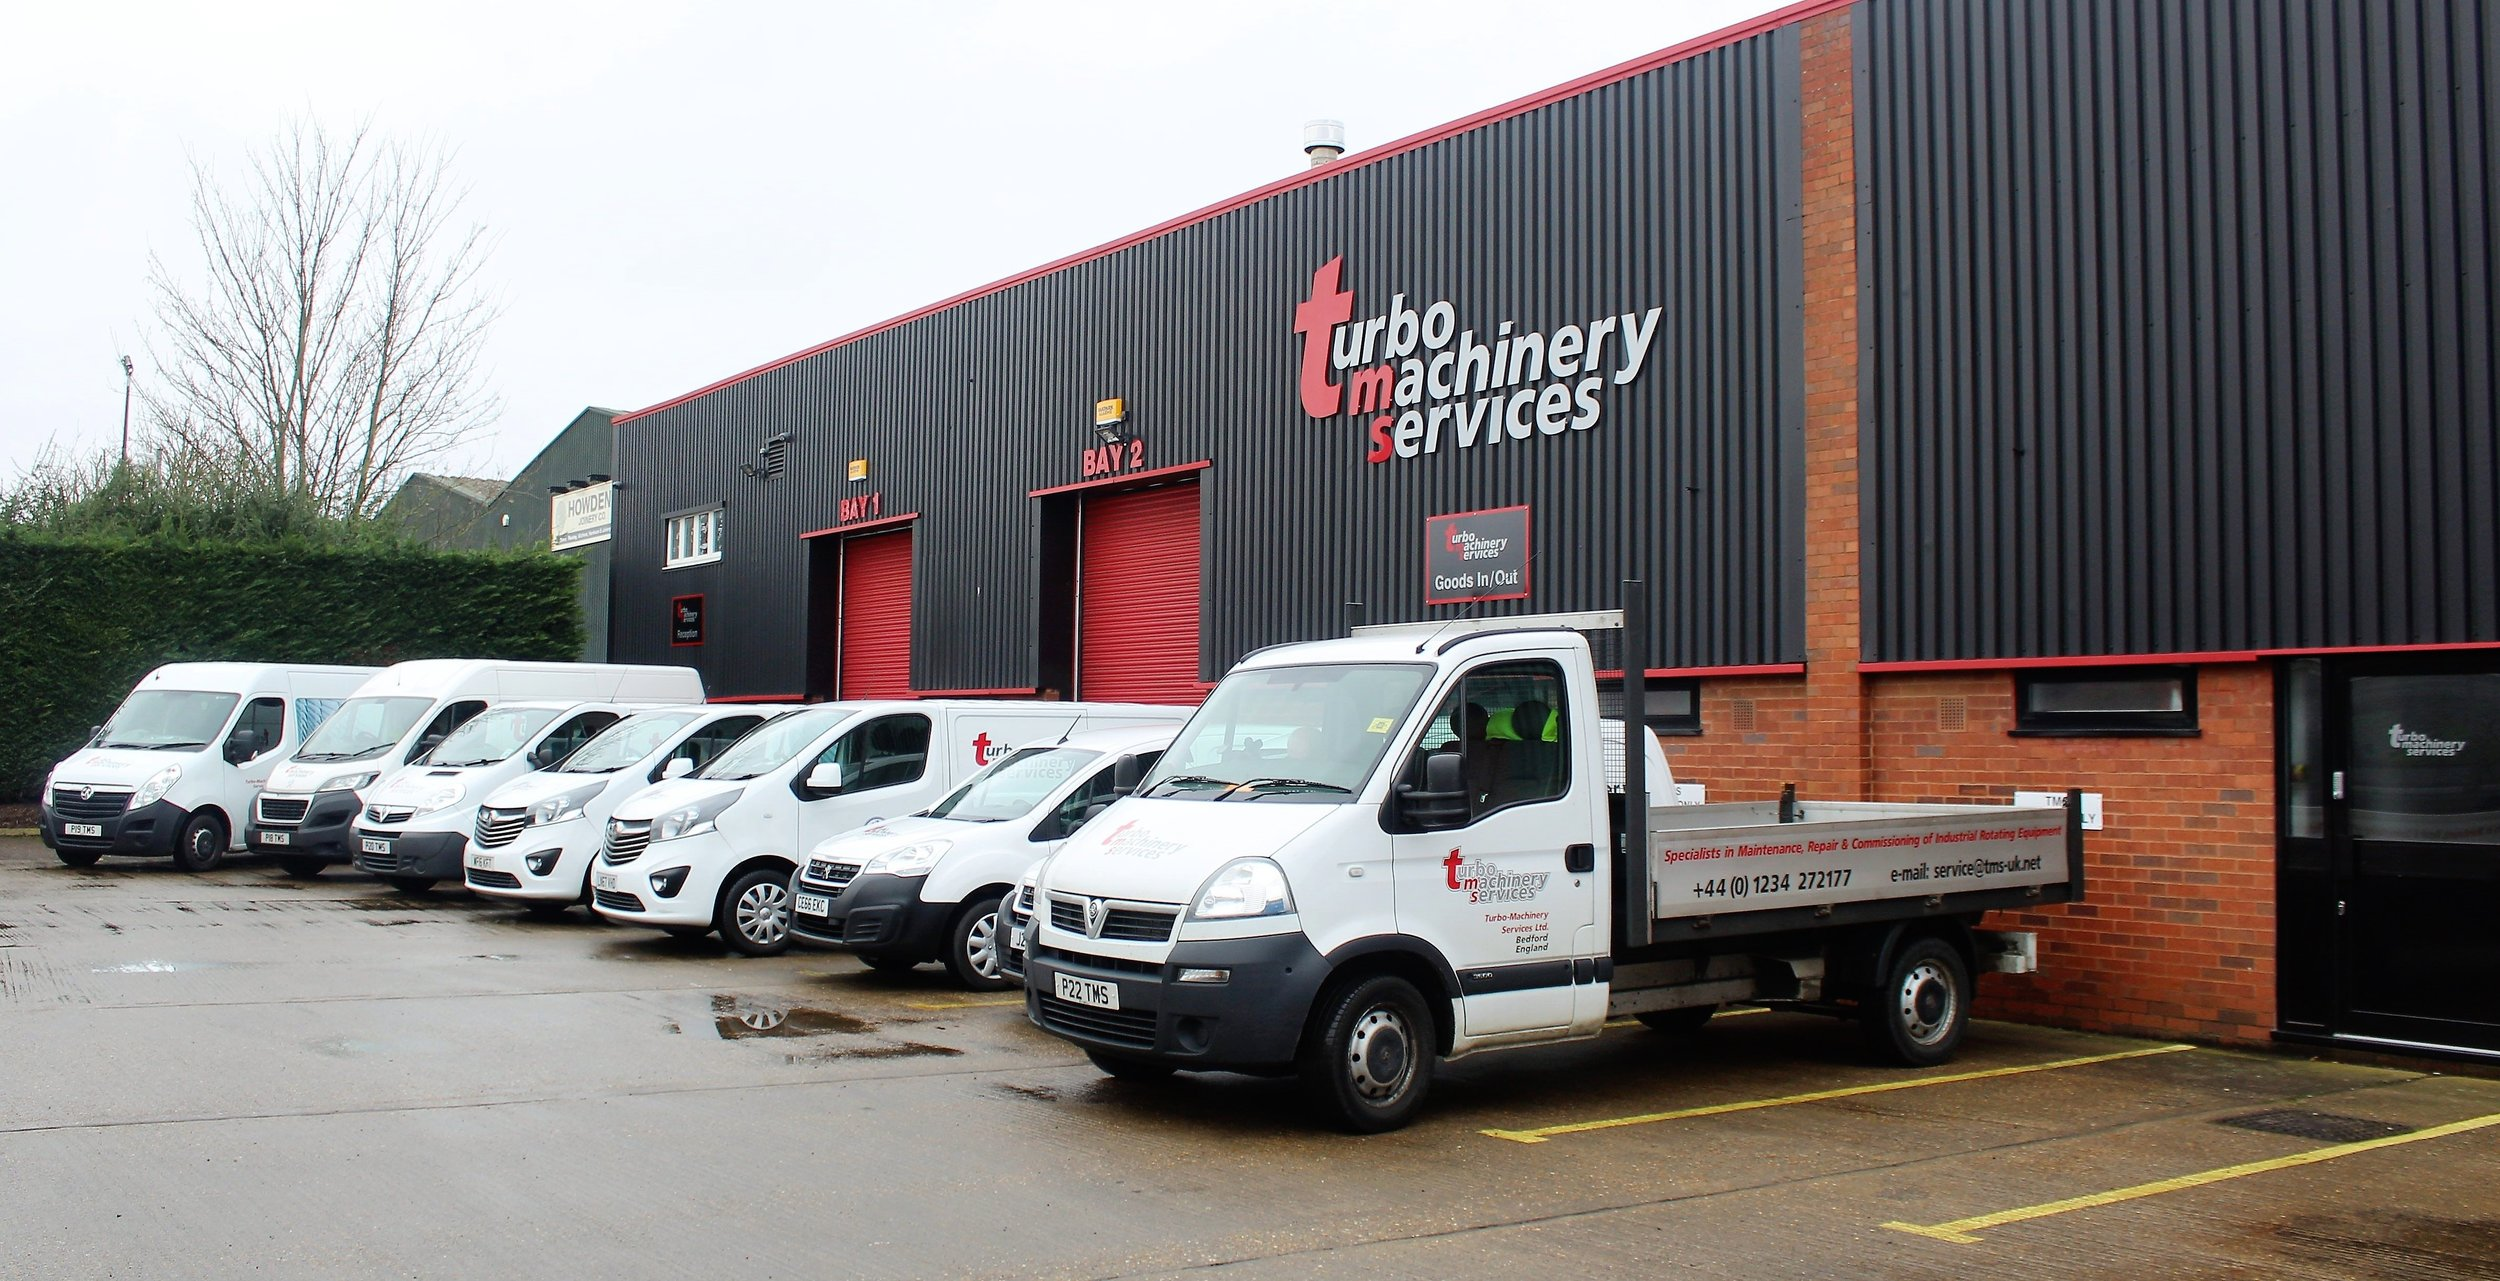 Fully equipped fleet - All engineers have their own vans, fully kitted with tooling to enable a fast response to customer breakdowns. Internal logistics ensure your equipment is cared for by TMS directly when being transported